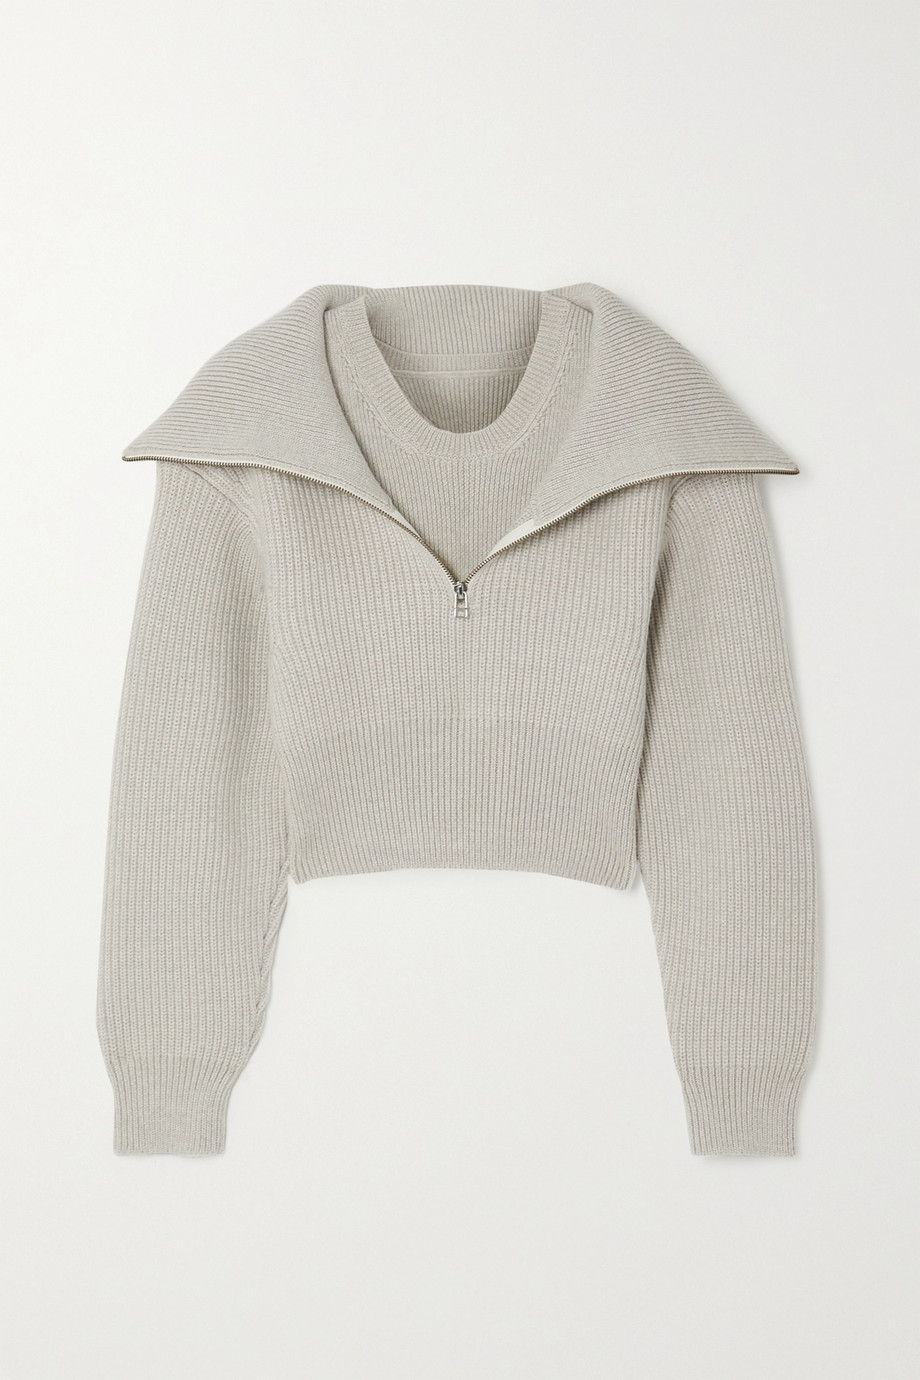 Jacquemus Risoul layered ribbed merino wool sweater